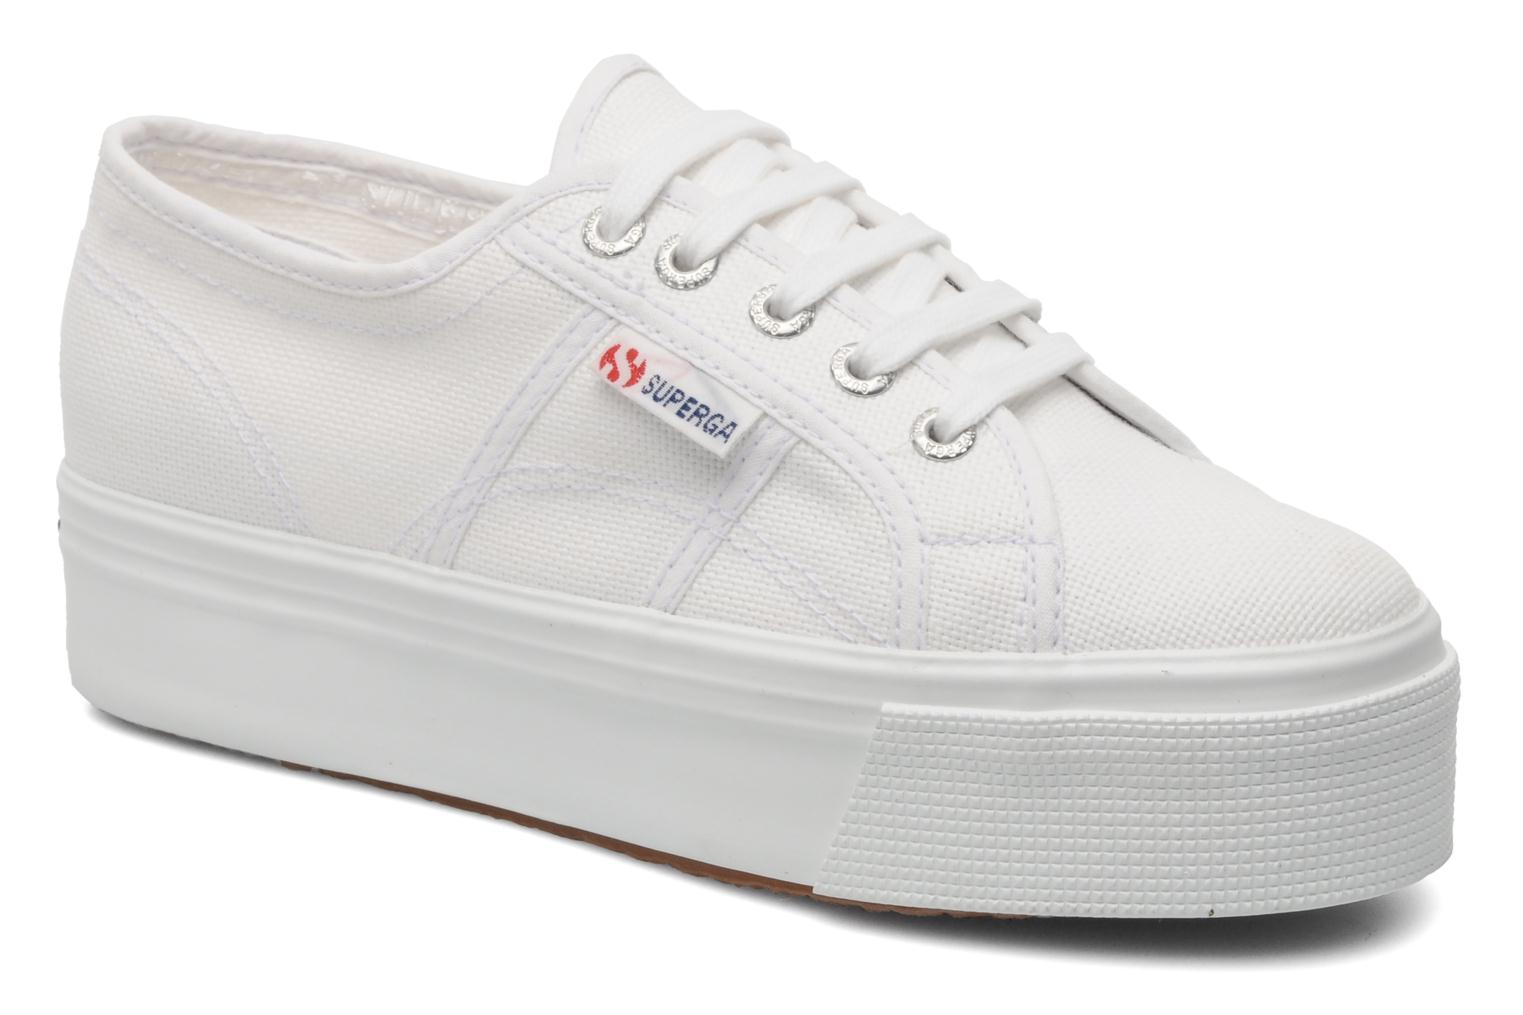 superga 2790 cot plato w trainers in white at 169064. Black Bedroom Furniture Sets. Home Design Ideas